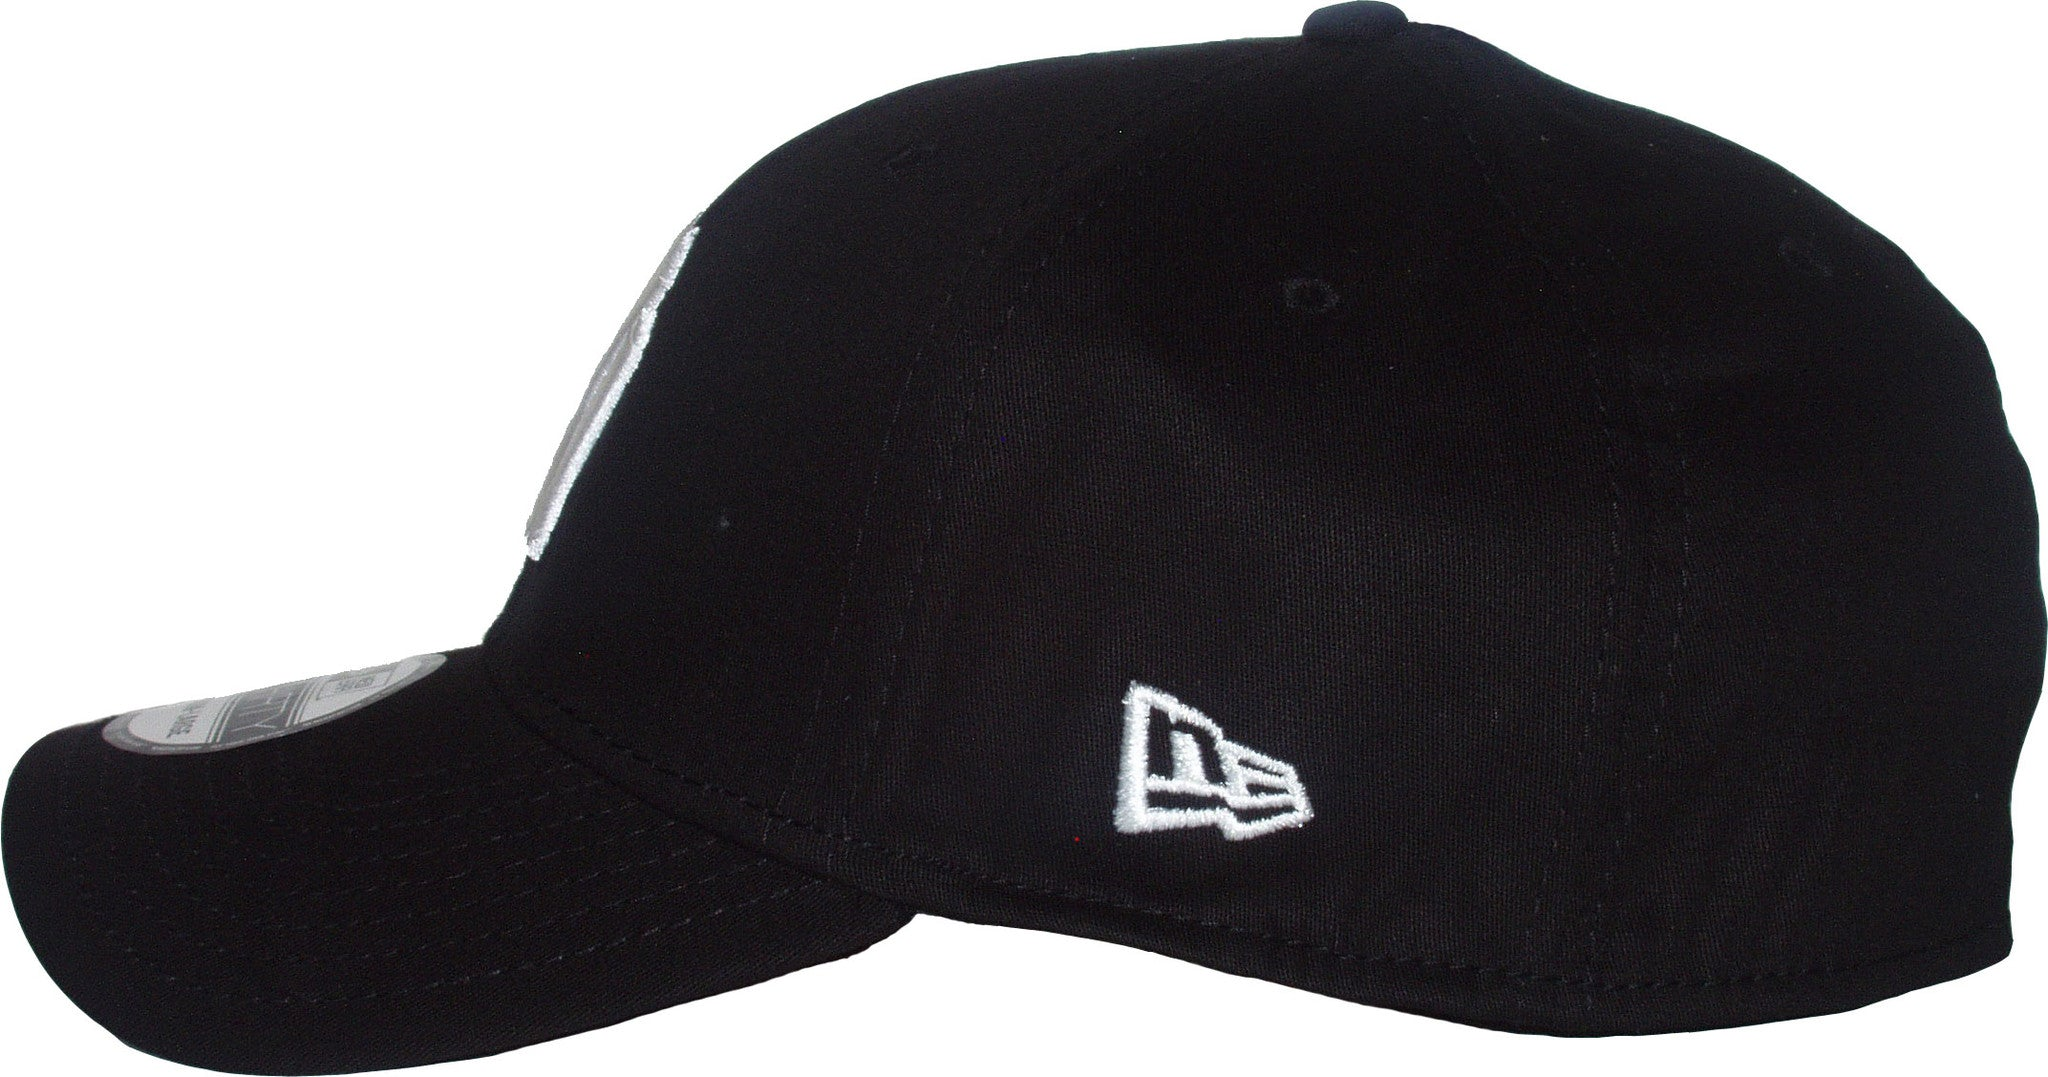 9d00517a1d9 ... New Era 3930 League Basic NY Black White Stretch Fit Baseball Cap -  pumpheadgear